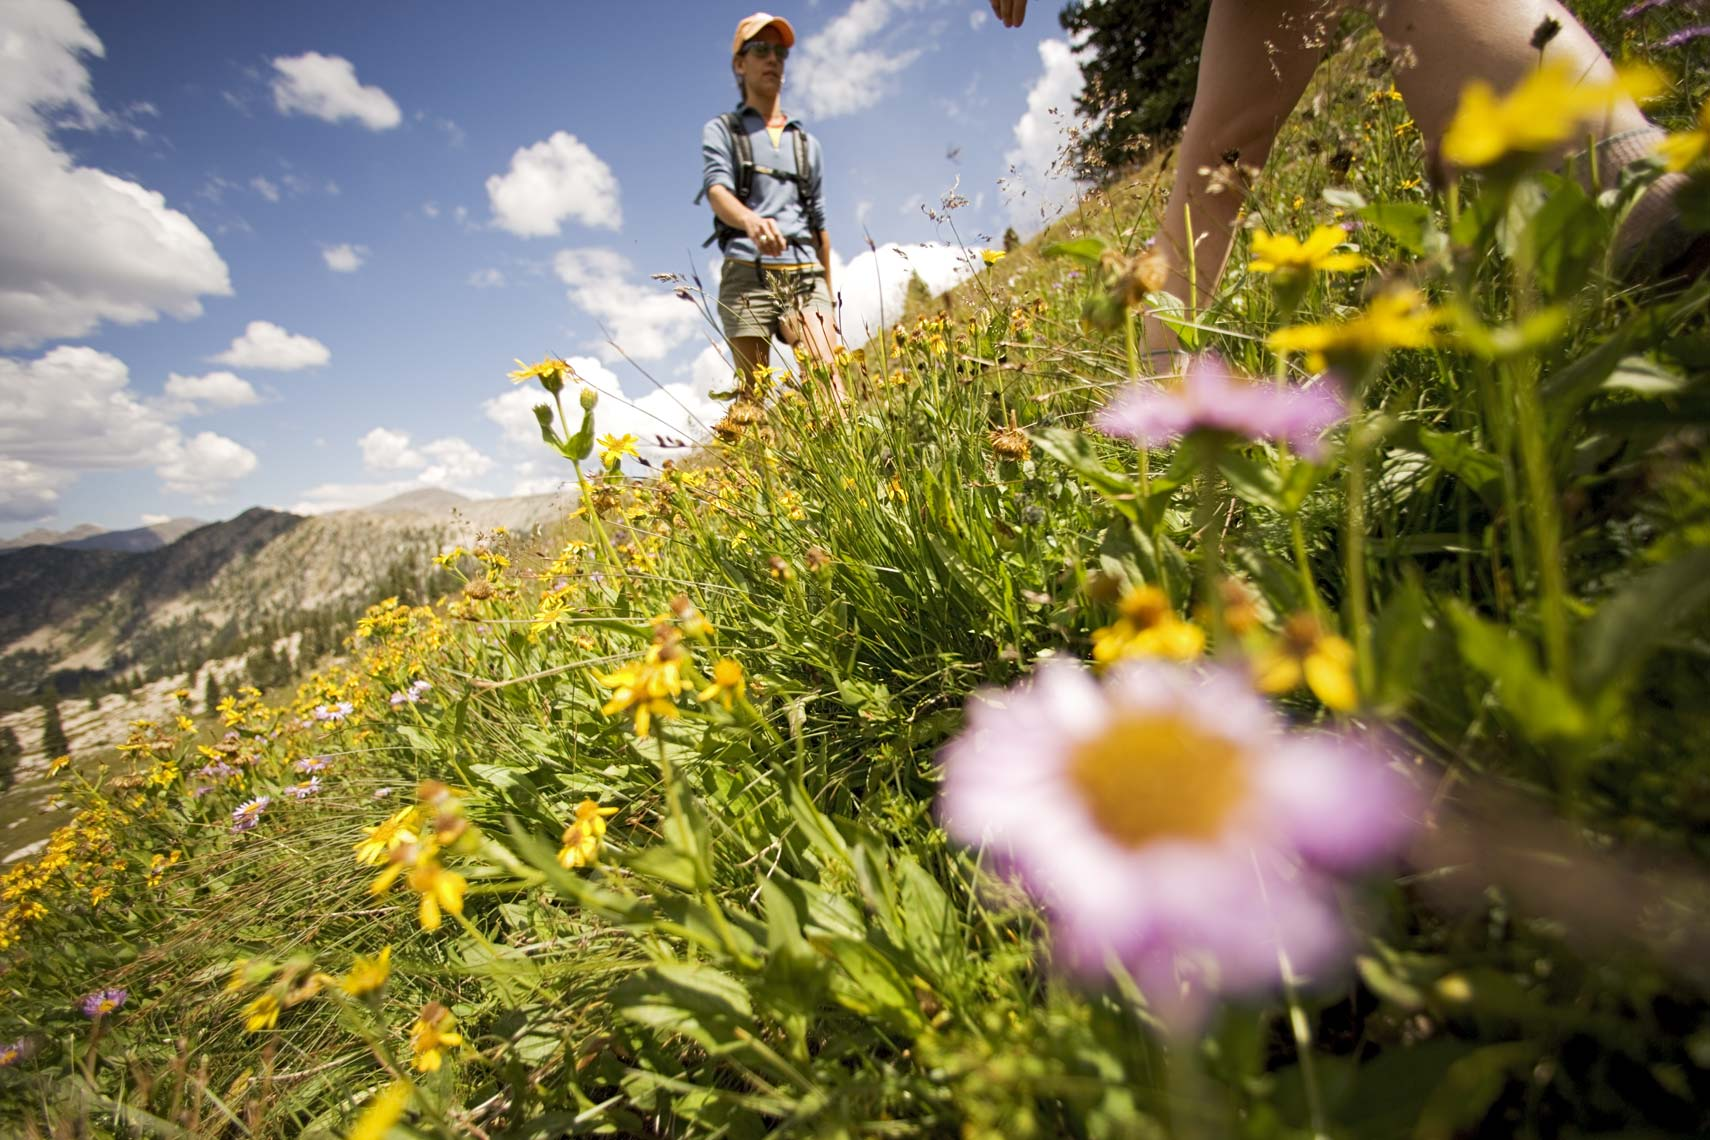 Tomas Zuccareno Photography | Hiking in the Wildflowers